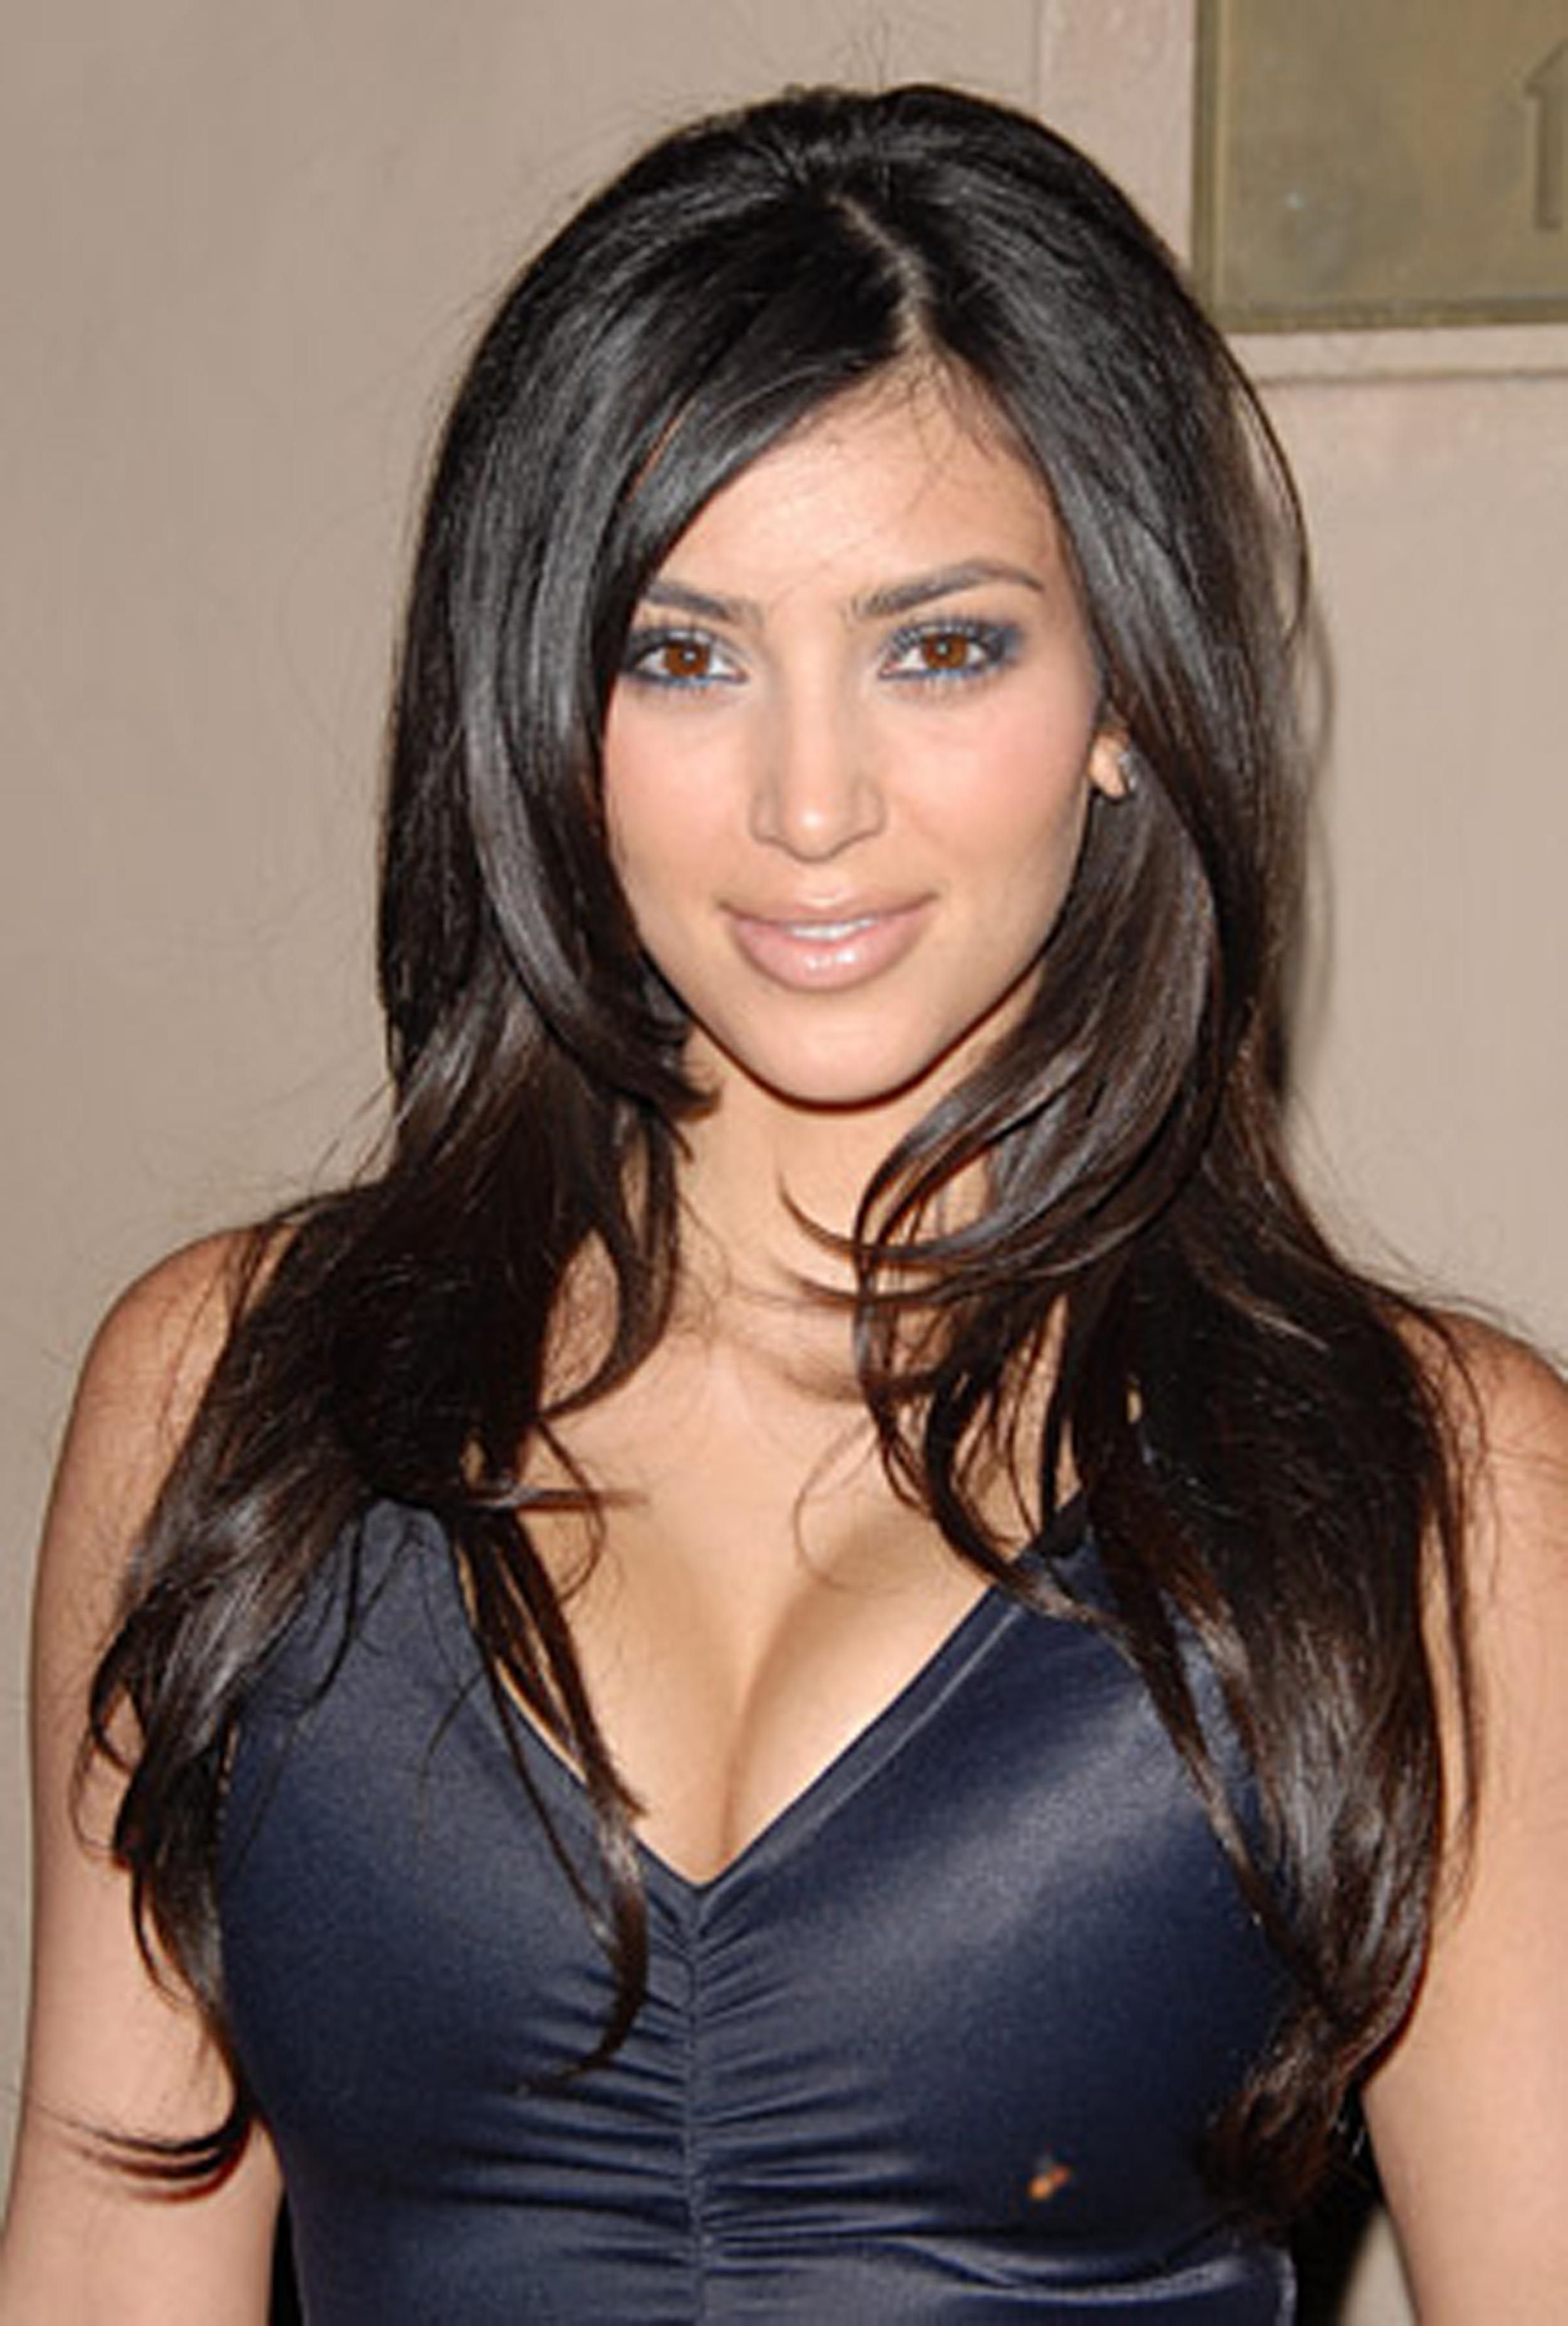 Long Layered Haircuts With Volume | Kim Kardashian Volume Hairstyle ·  Celebrity HairstylesLatest ...